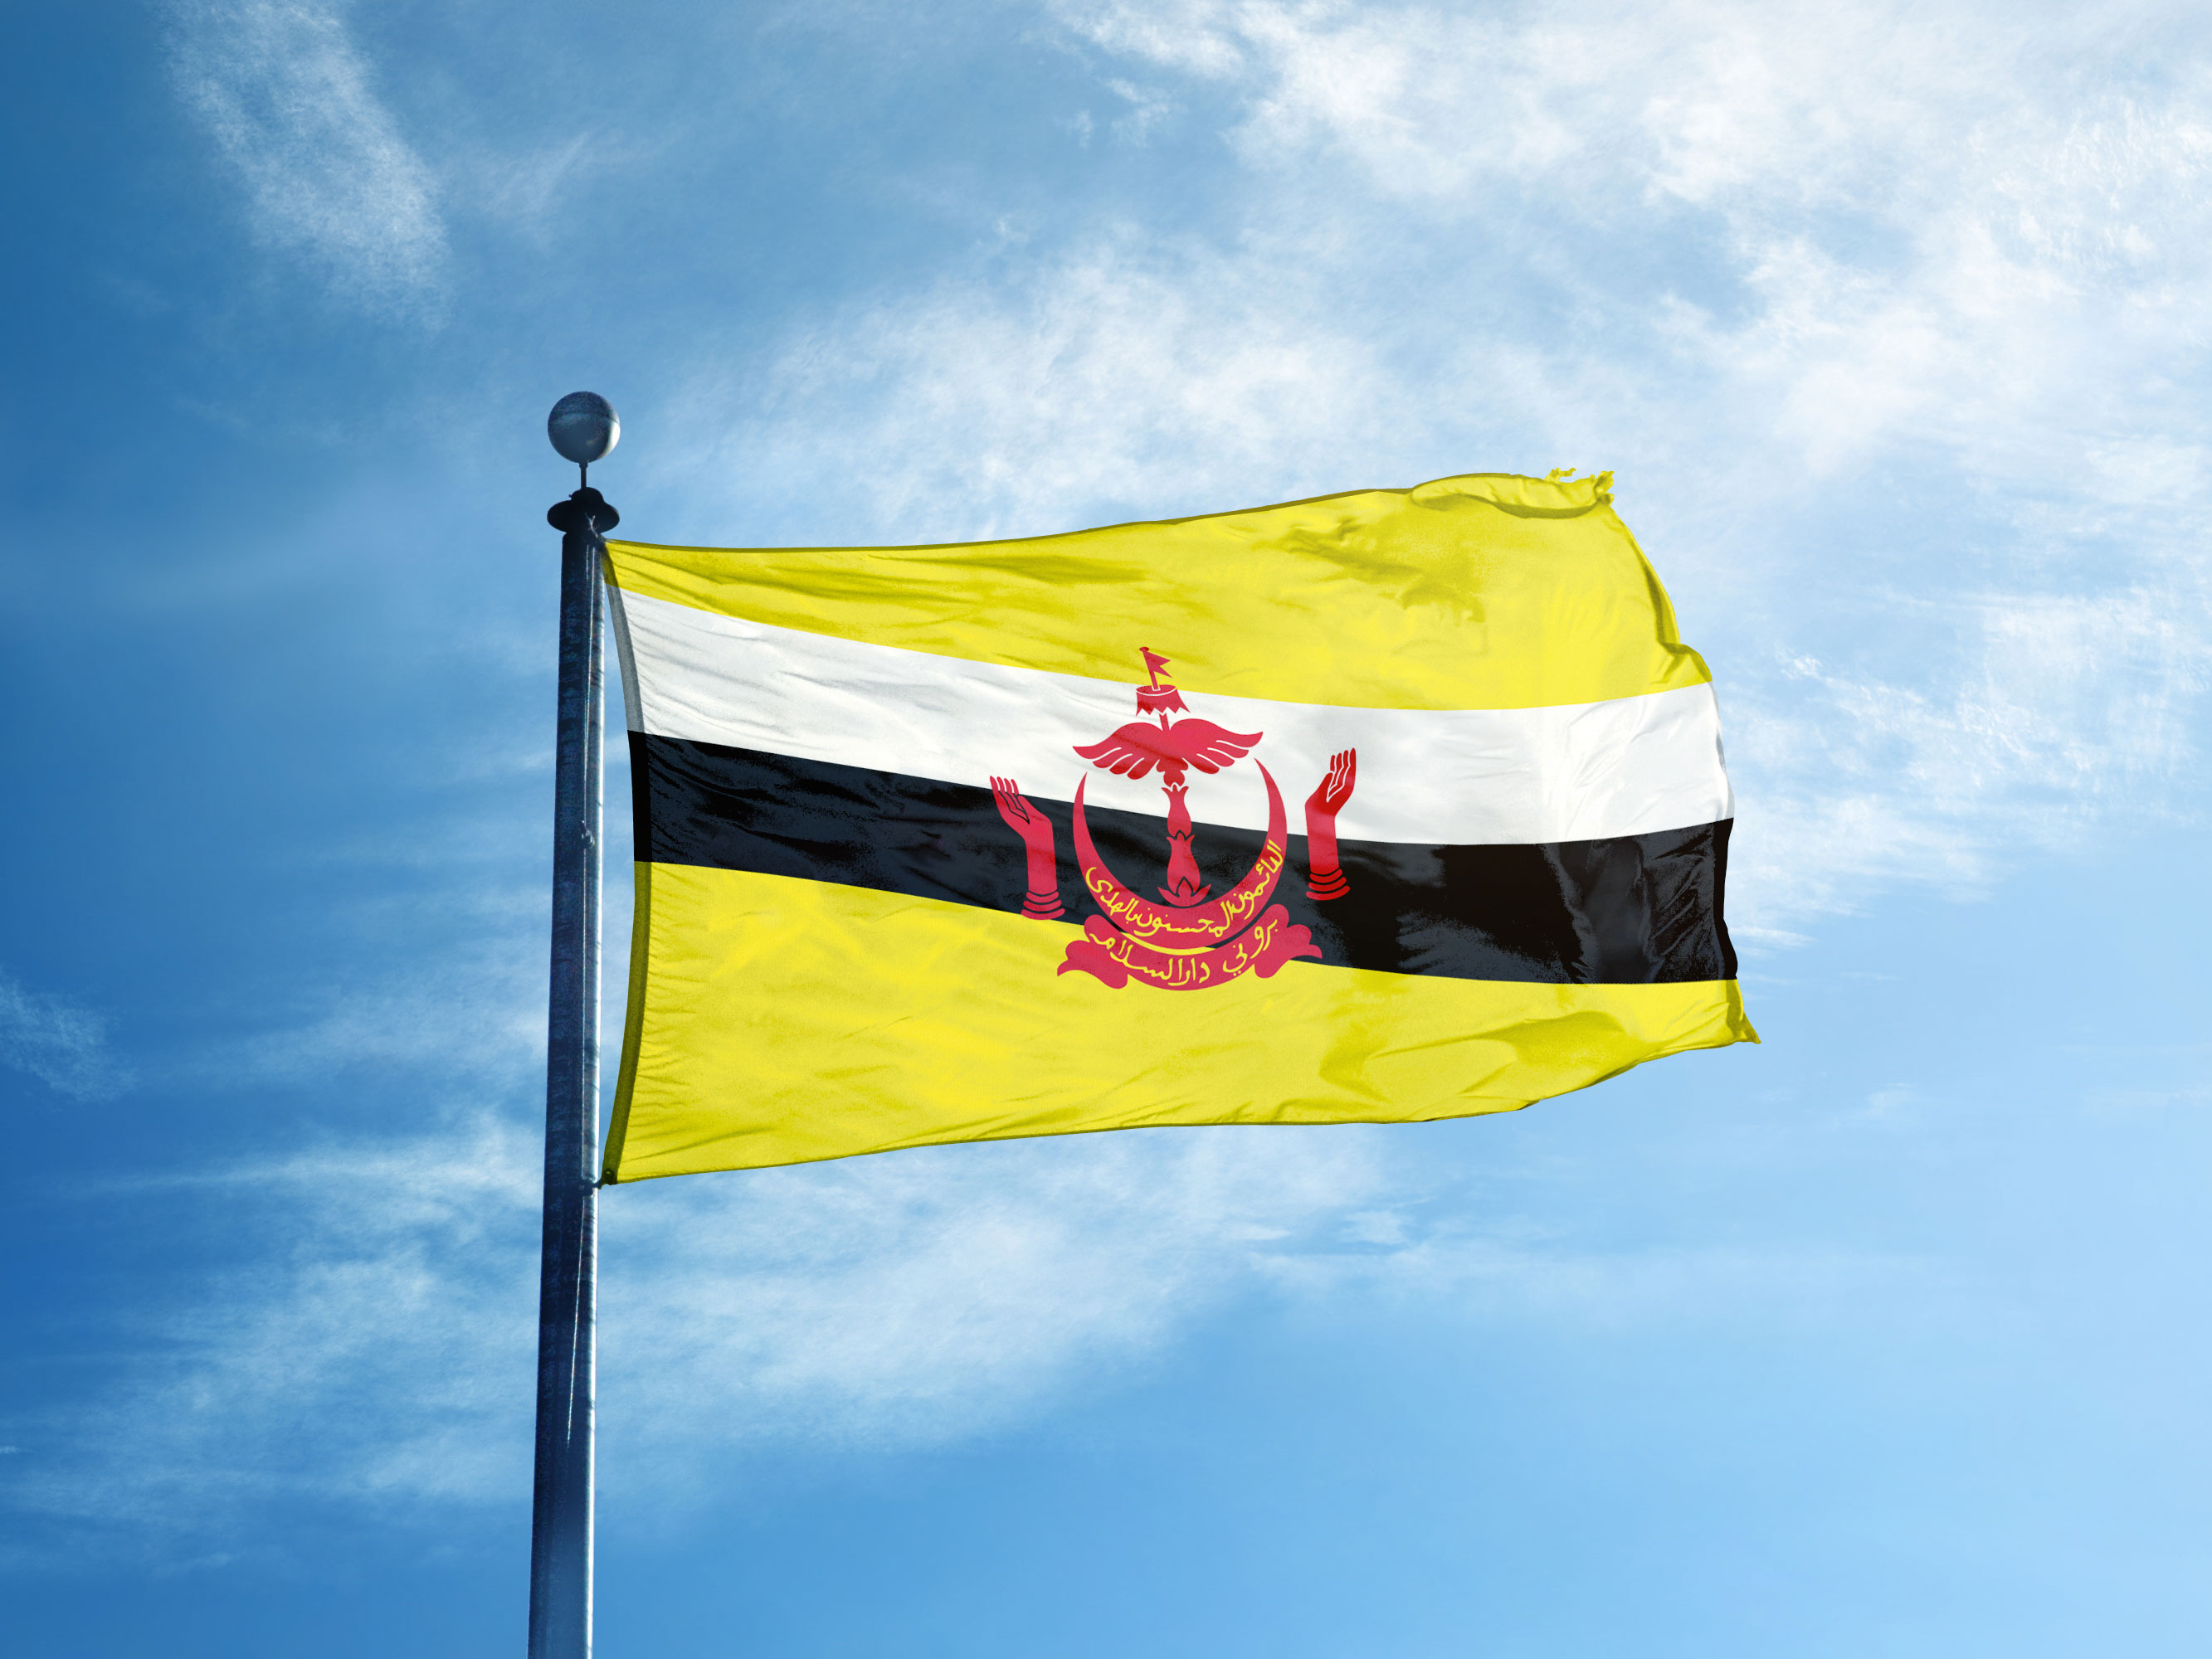 Brunei is a tiny monarchy located on the north coast of the island of Borneo in South-East Asia. Since 1968, the country has been ruled by Sultan Hassanal Bolkiah